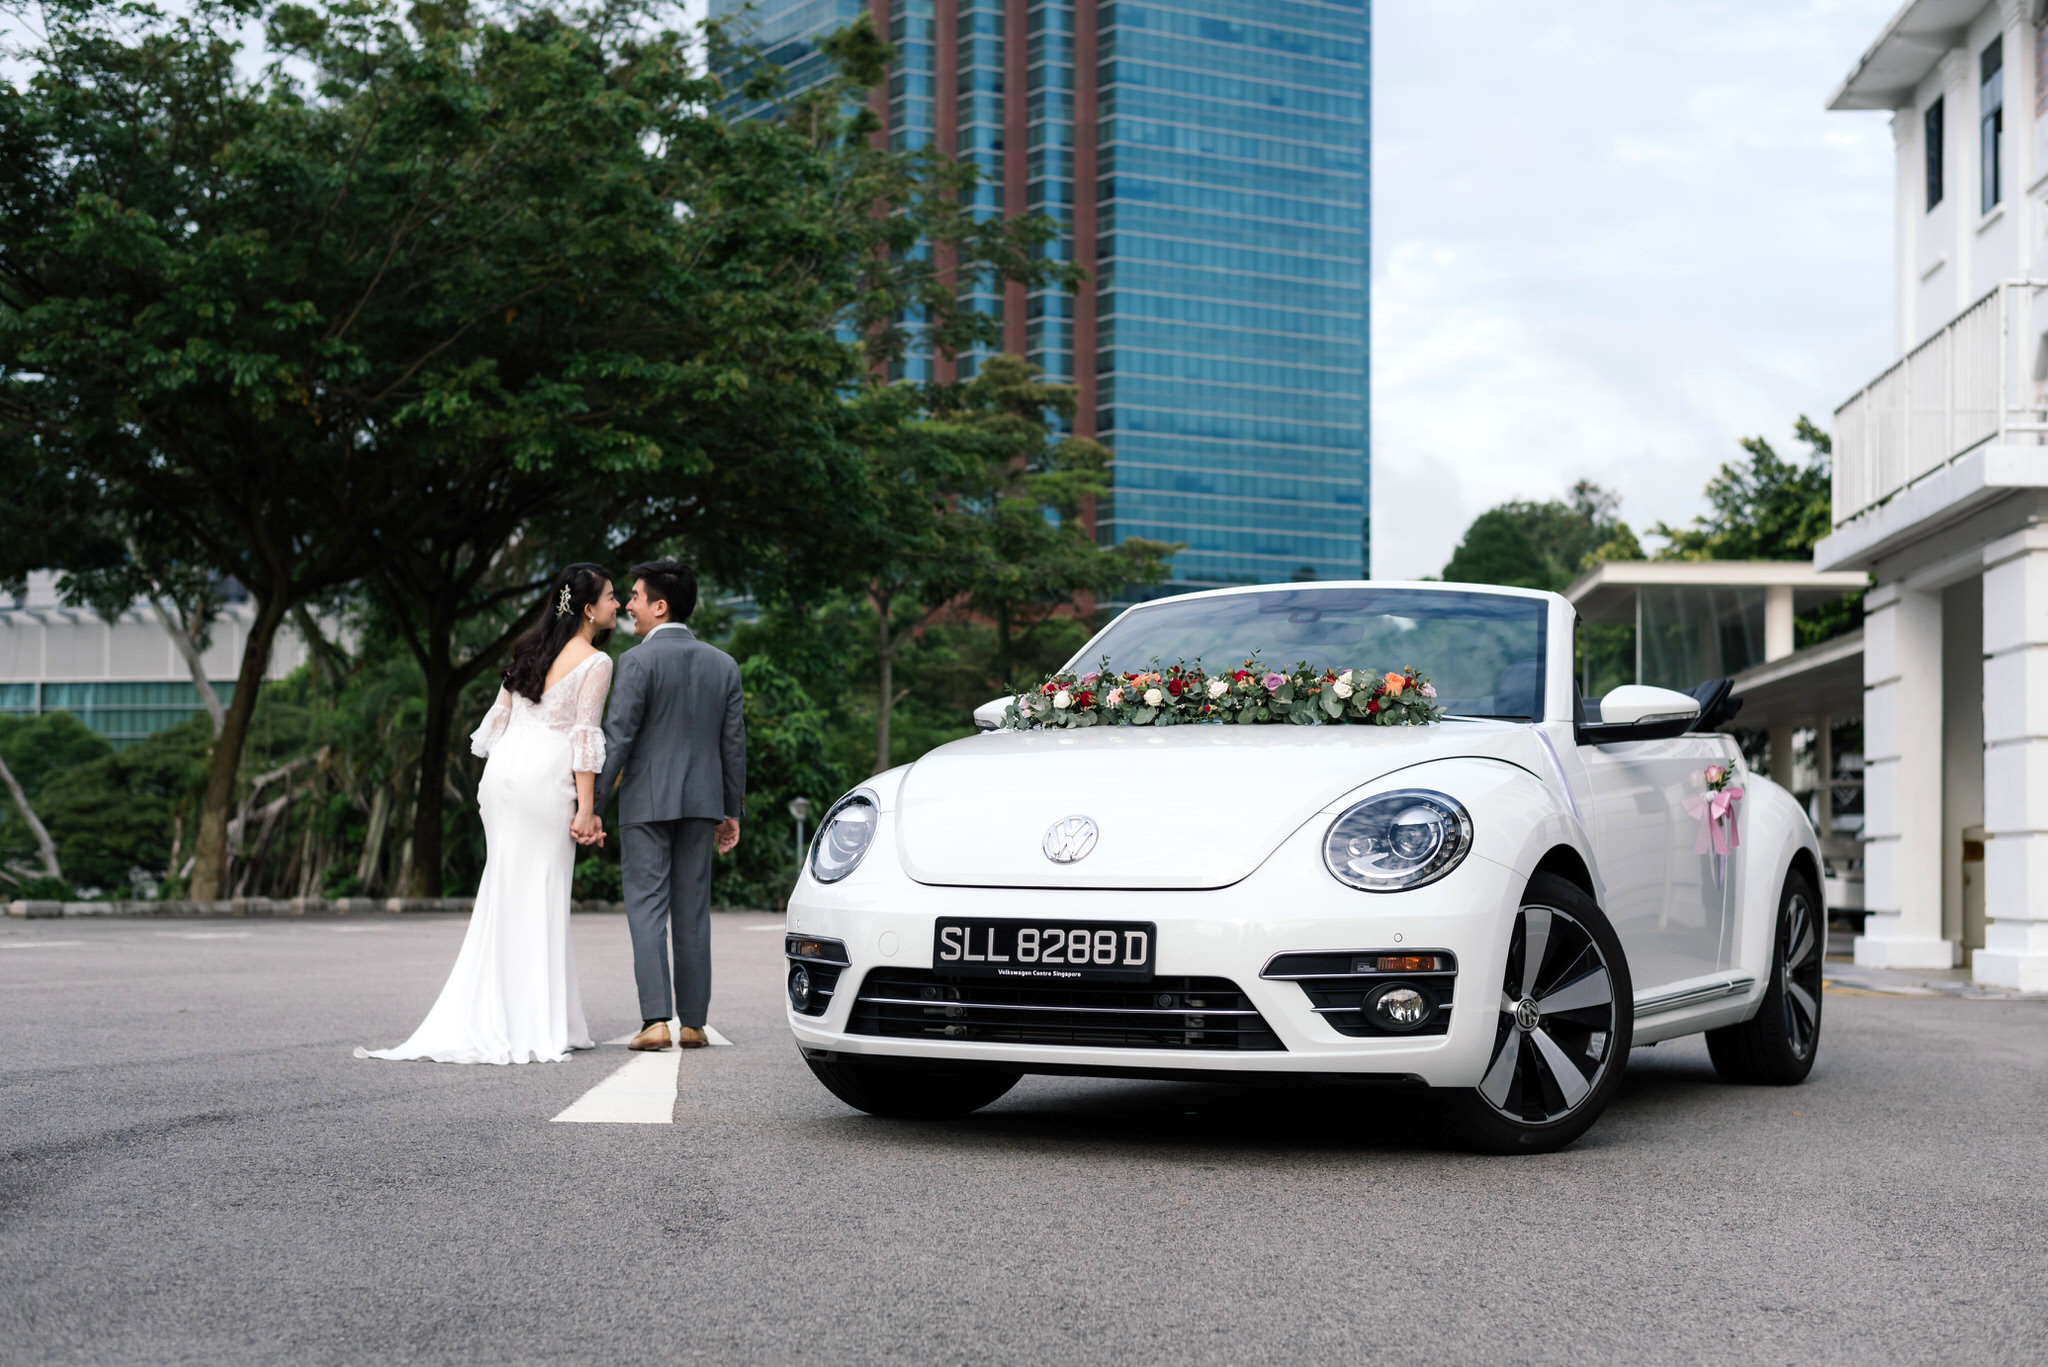 Car Club Wedding Beetle ( Discounted rates available for our couples)   At Car Club, we know it's extremely important to make every part of your special day memorable.  With over 20 years of experience in mobility solutions, our wedding car rental service offers every wedding couple a touch of elegance & glitz, with our chic-looking Volkswagen Beetle Cabriolet and Coupe.  Whether you are looking for a bespoke pre-wedding shoot or grand entry on your big day, our high-quality cars and competitive rates will let you travel in style without exceeding budget.  Get more details  here  or WhatsApp us at +65 8522 5359 for a non-obligatory quote.